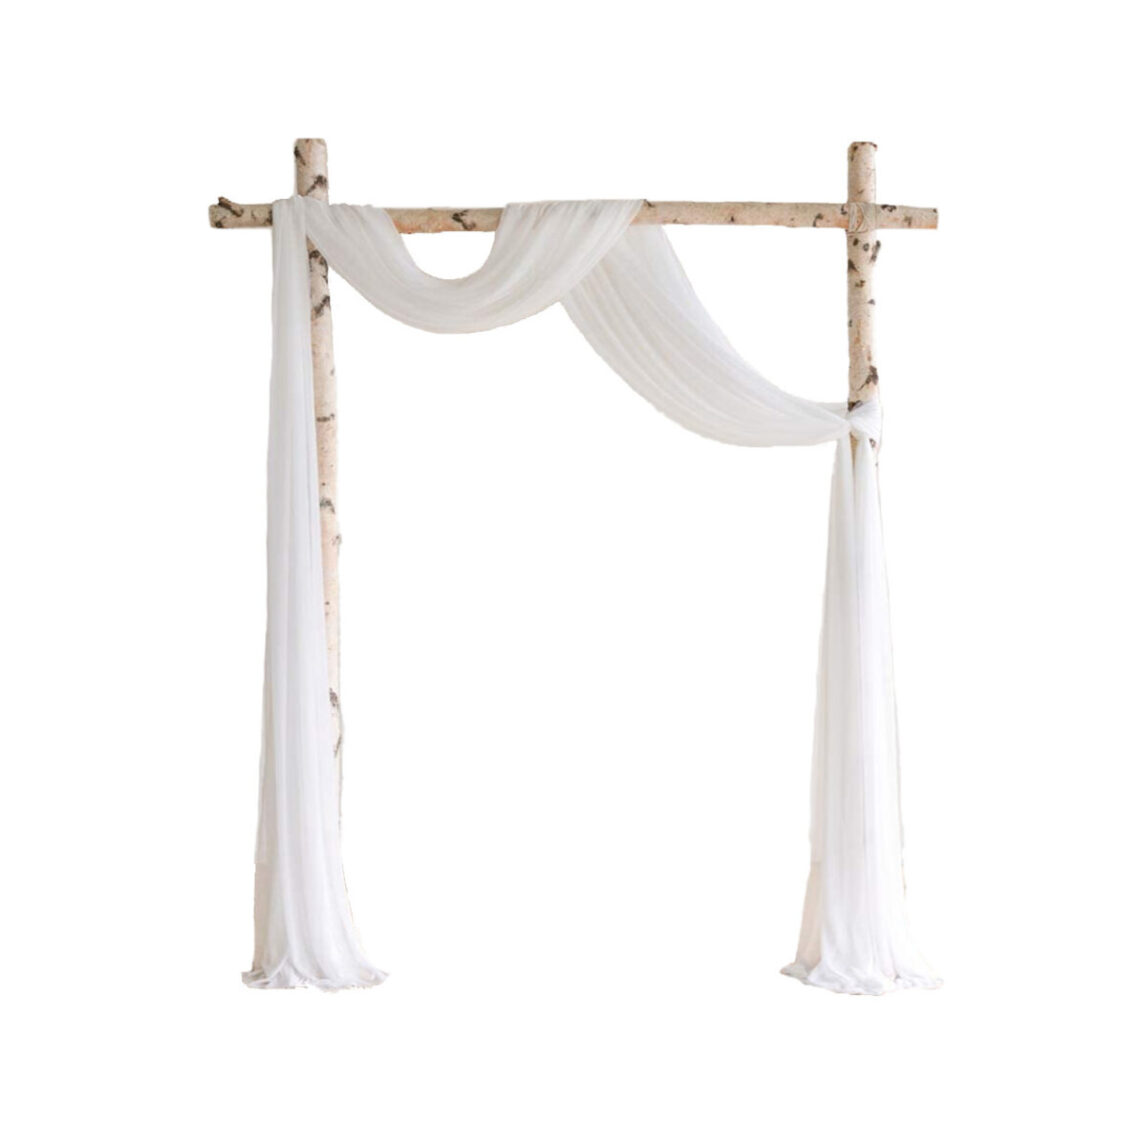 FLOWER ARCH DRAPES